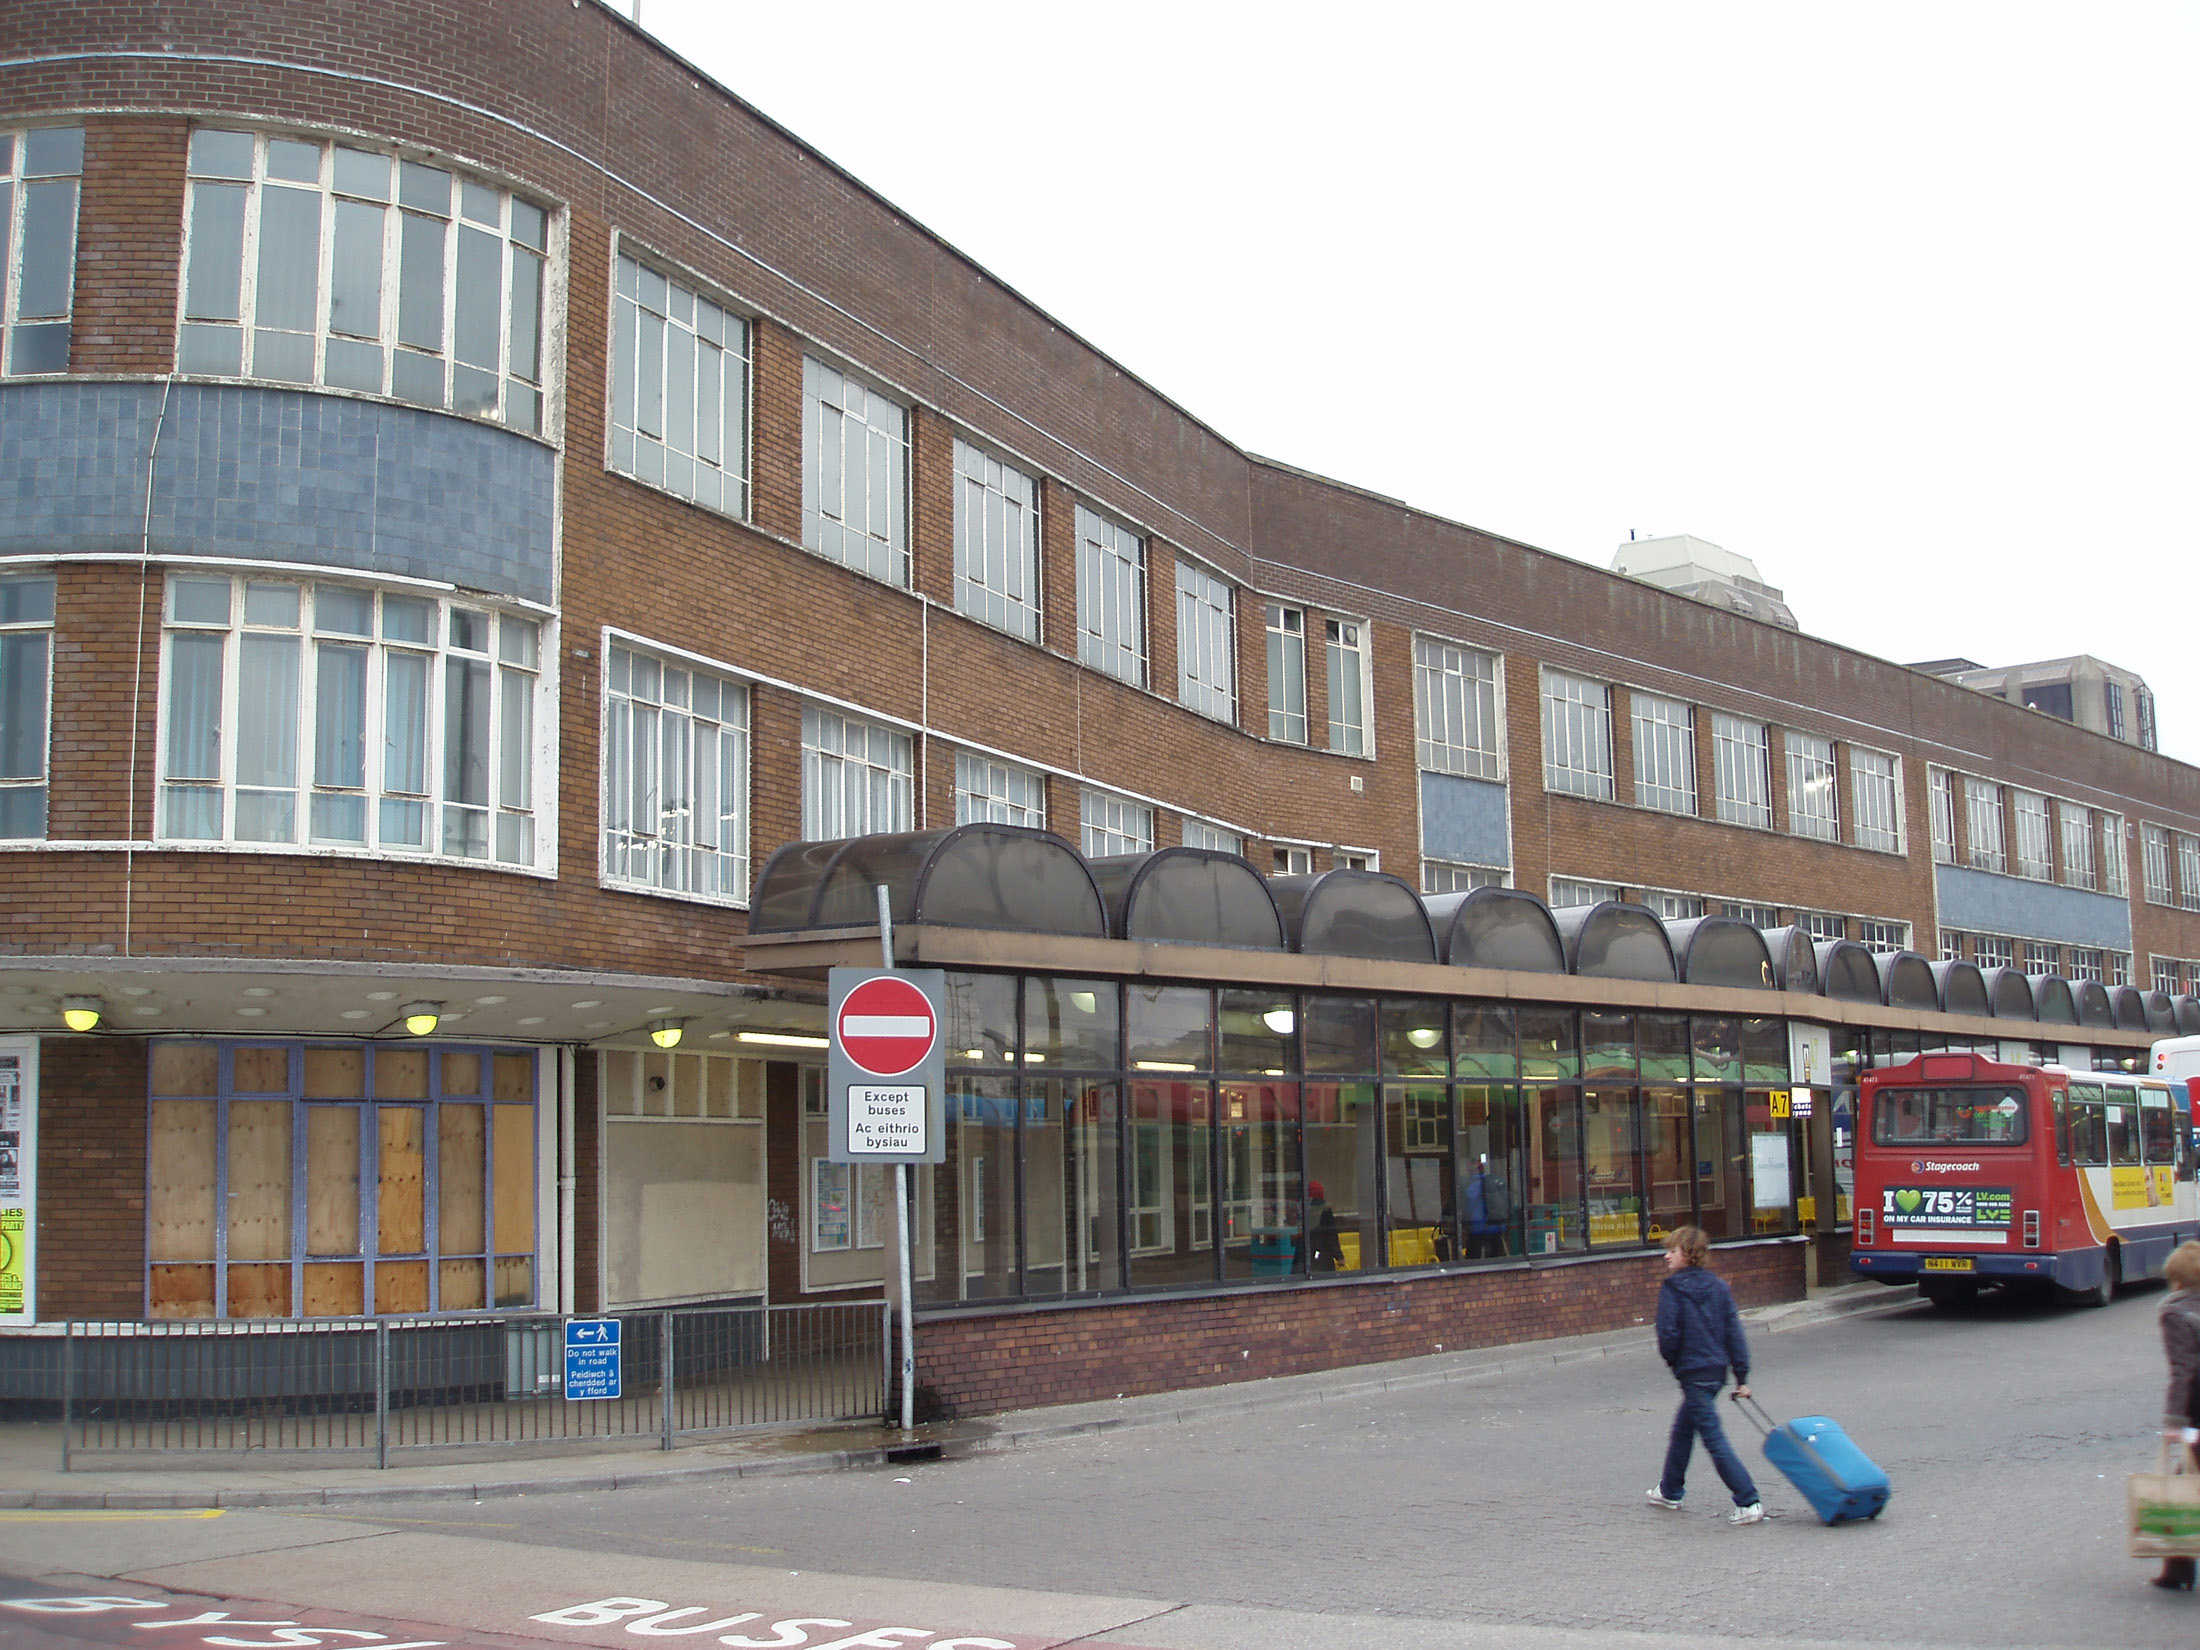 View of the Central Bus Station, Cardiff, Wales with a row of shelters along the exterior of the depot and a woman walking past with her suitcase as a bus loads passengers in the background